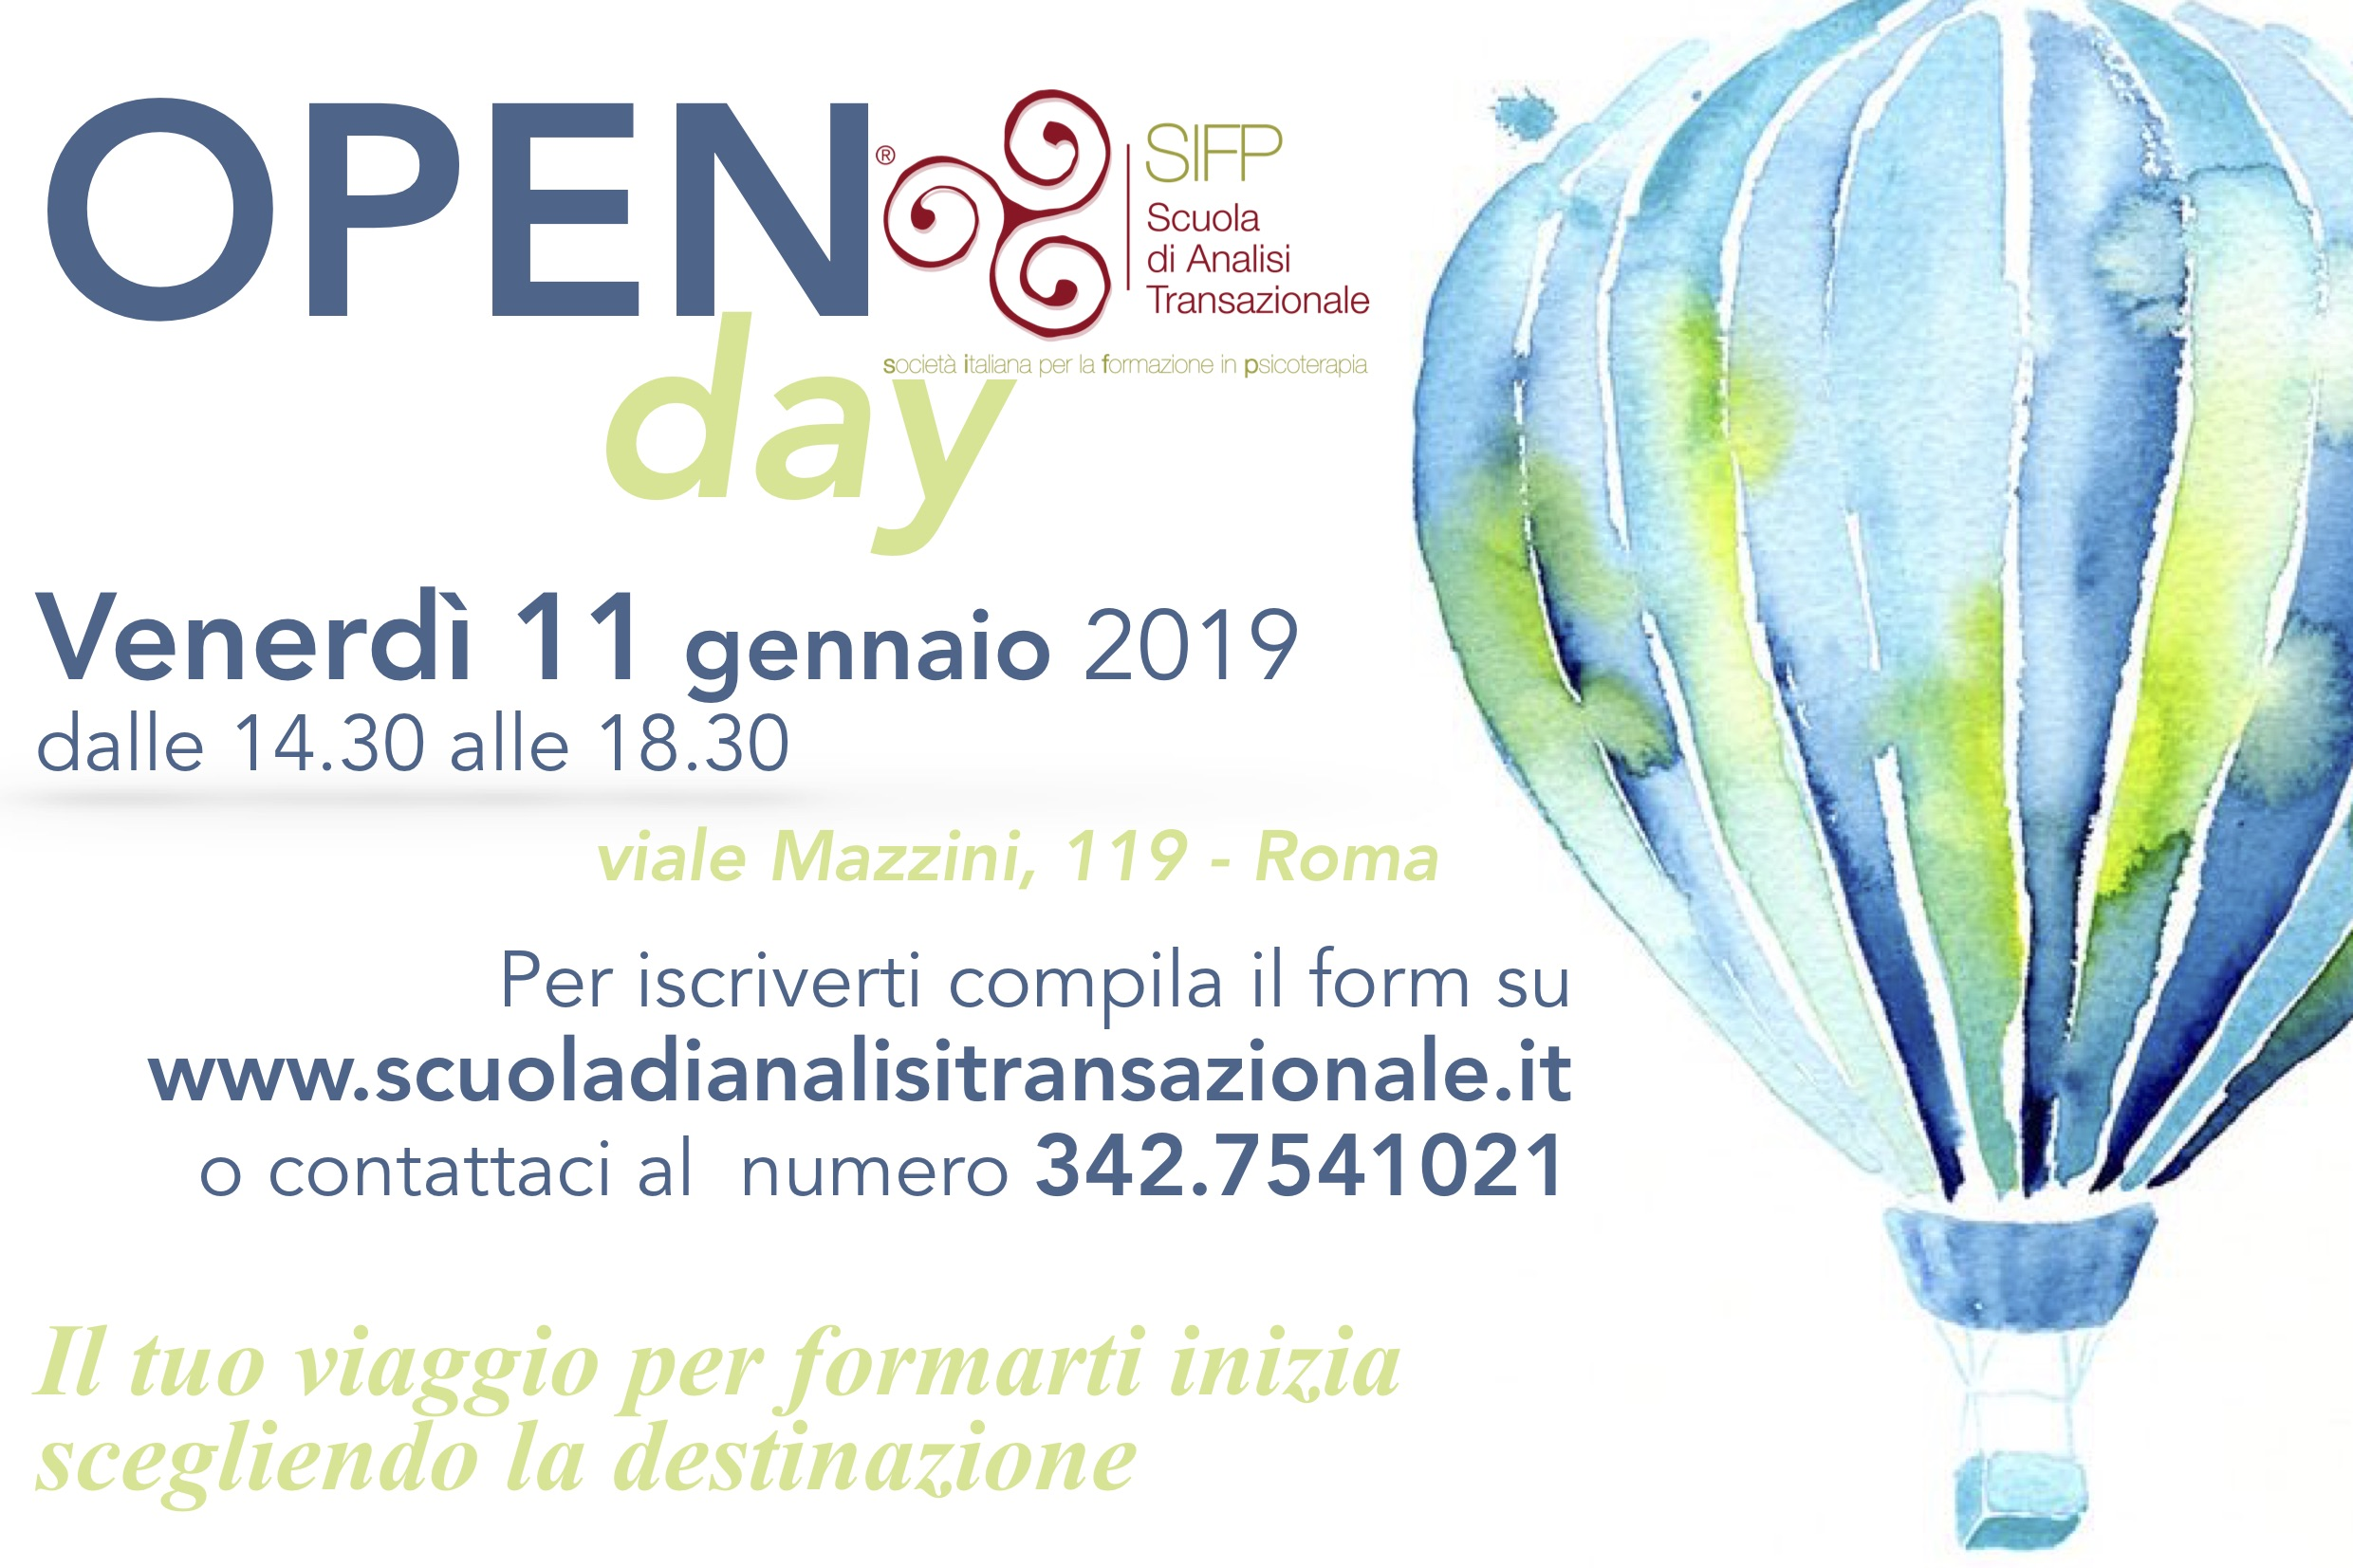 Sifp-OpenDay-genn2019